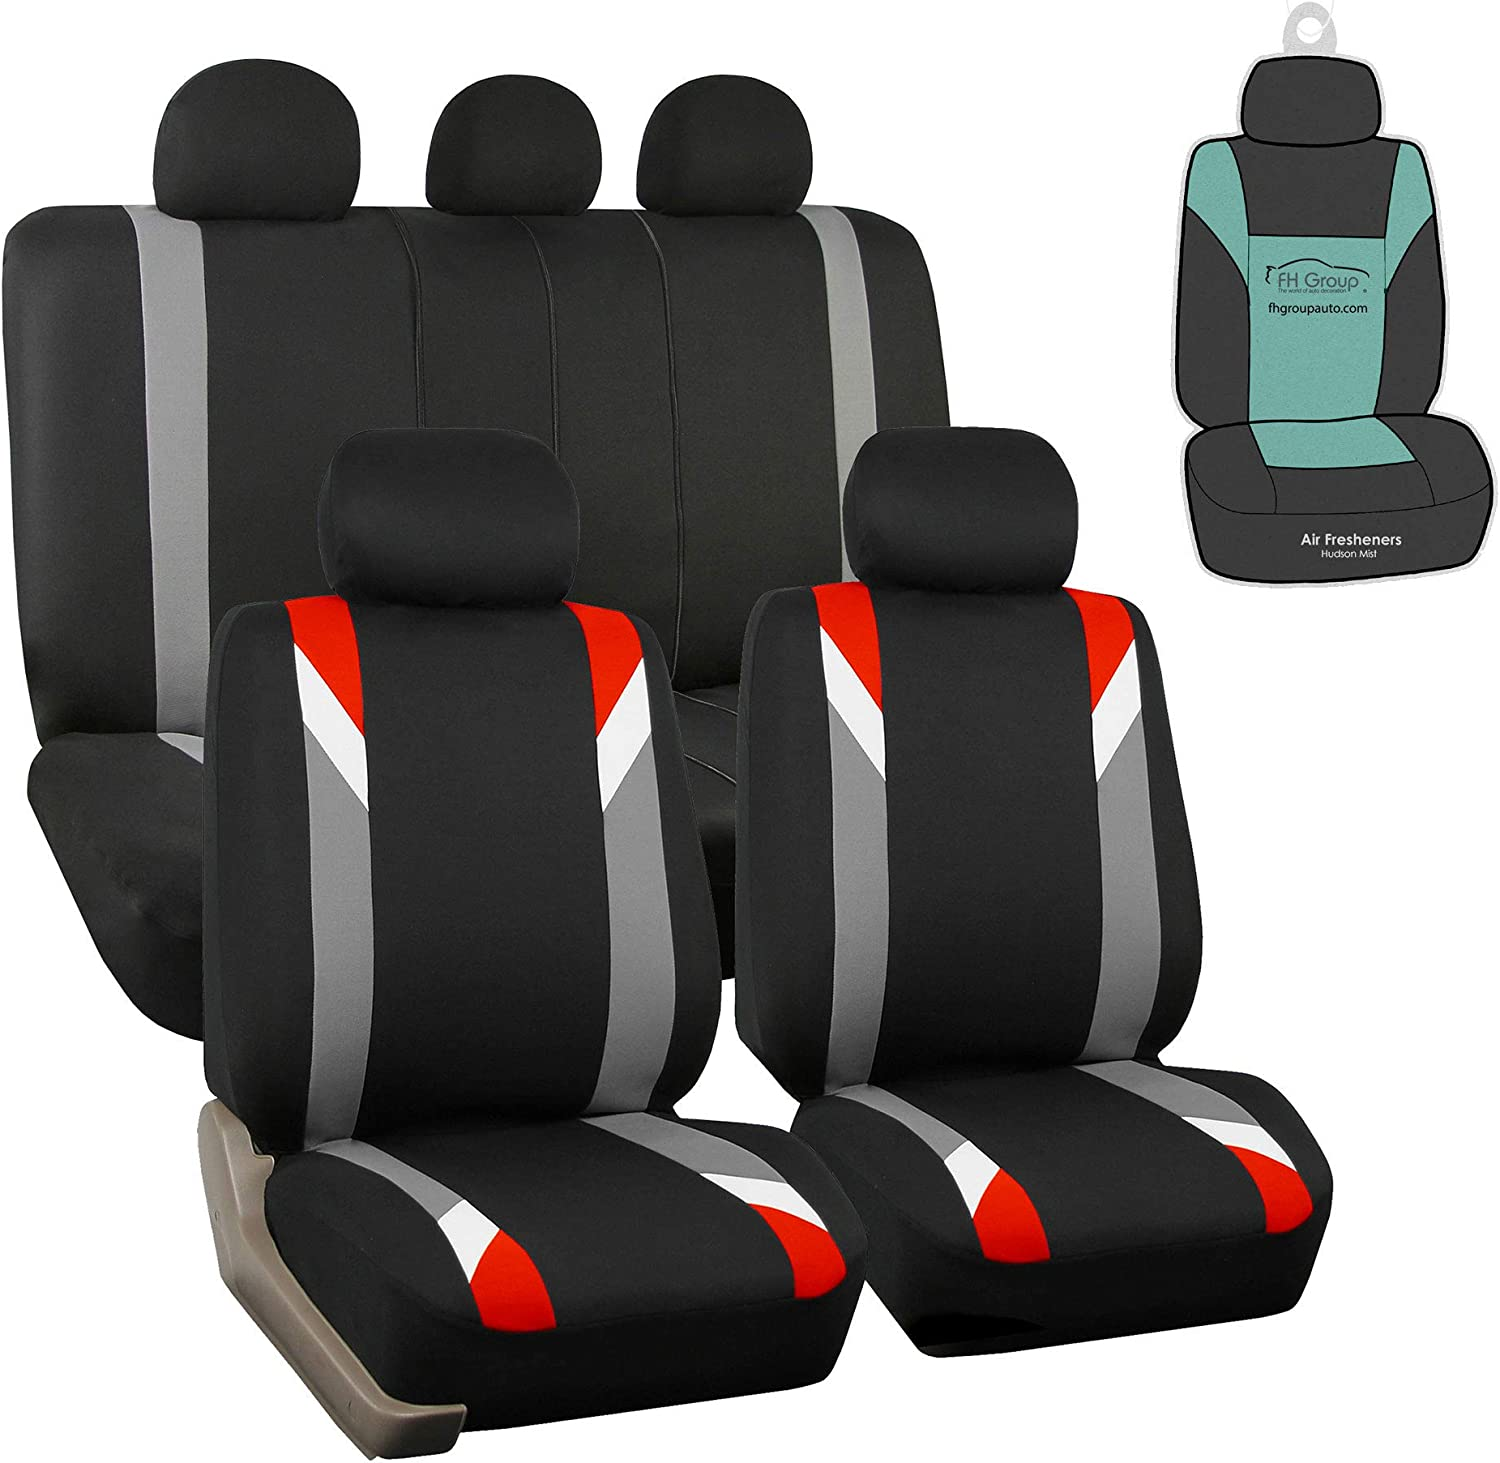 FH Group FB033115 Premium Modernistic Seat Covers Airbag & Split Ready, Red/Black with Gift - Fit Most Car, Truck, SUV, or Van